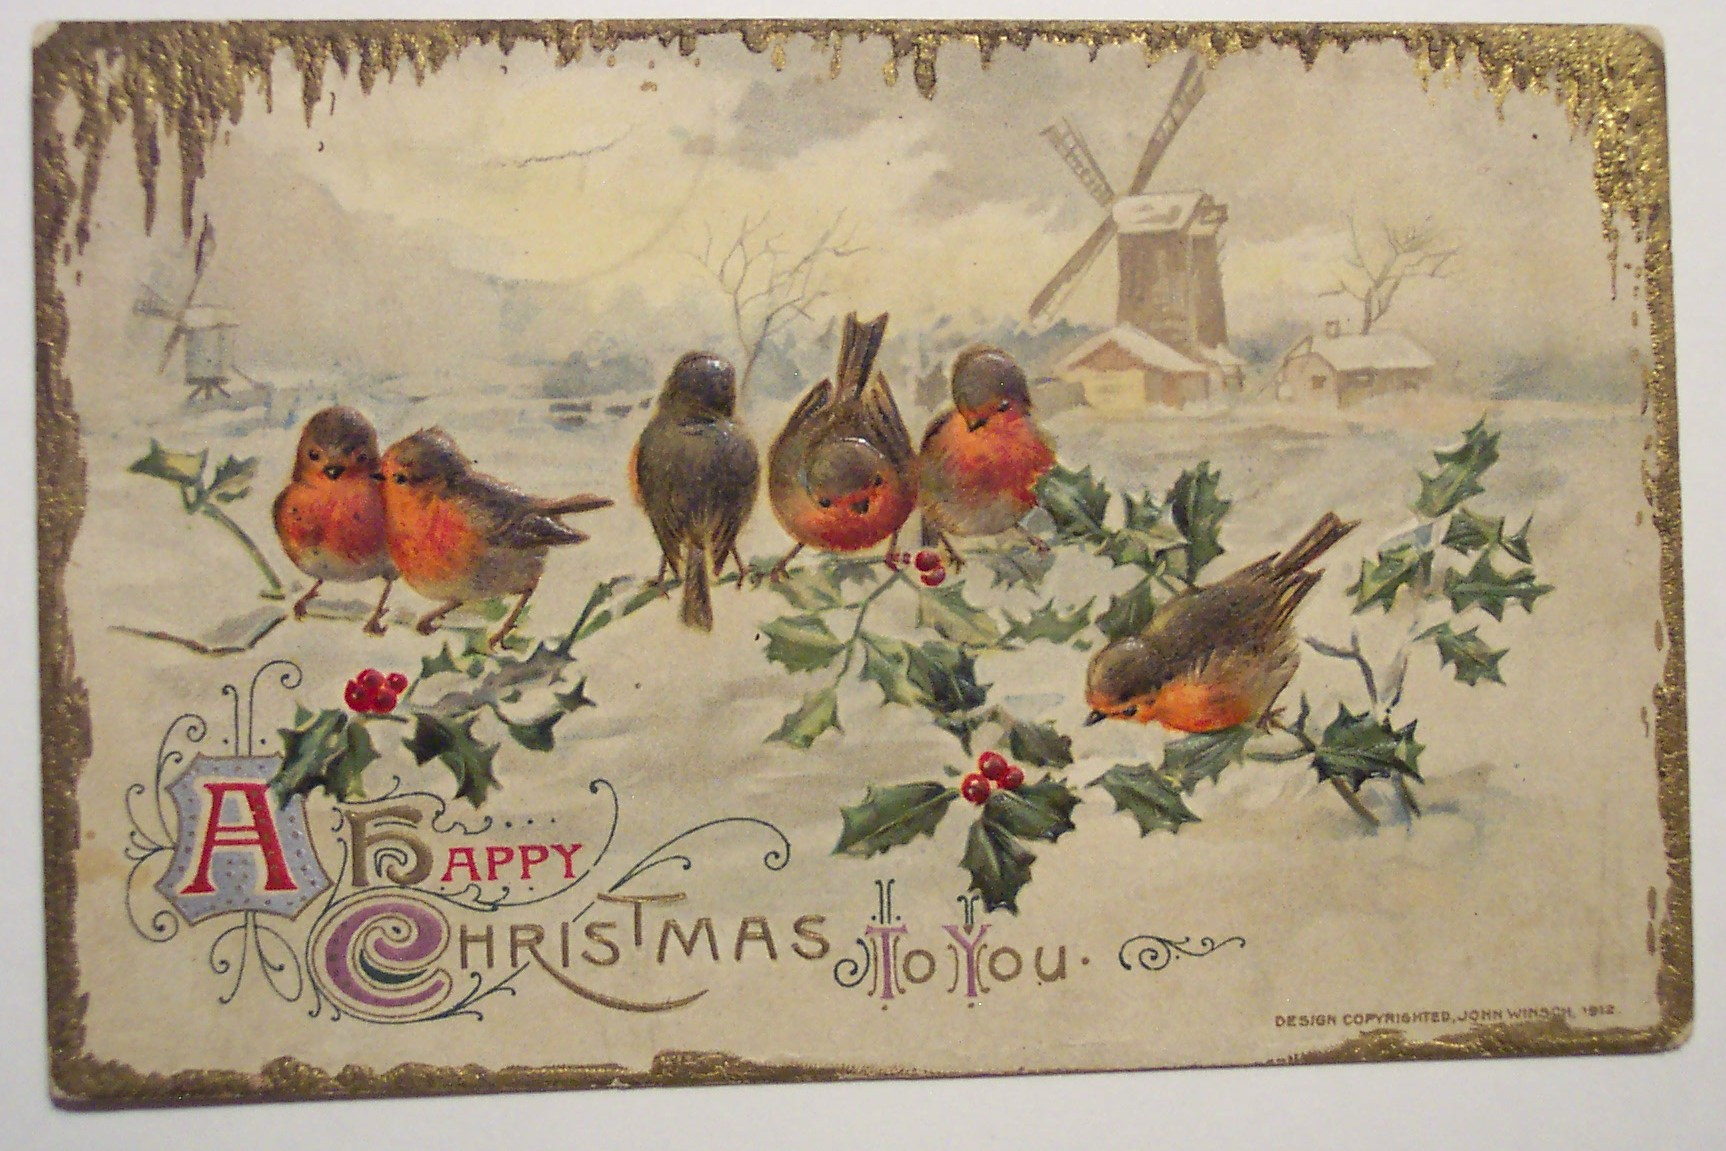 family mysteries revealed through holiday cards and